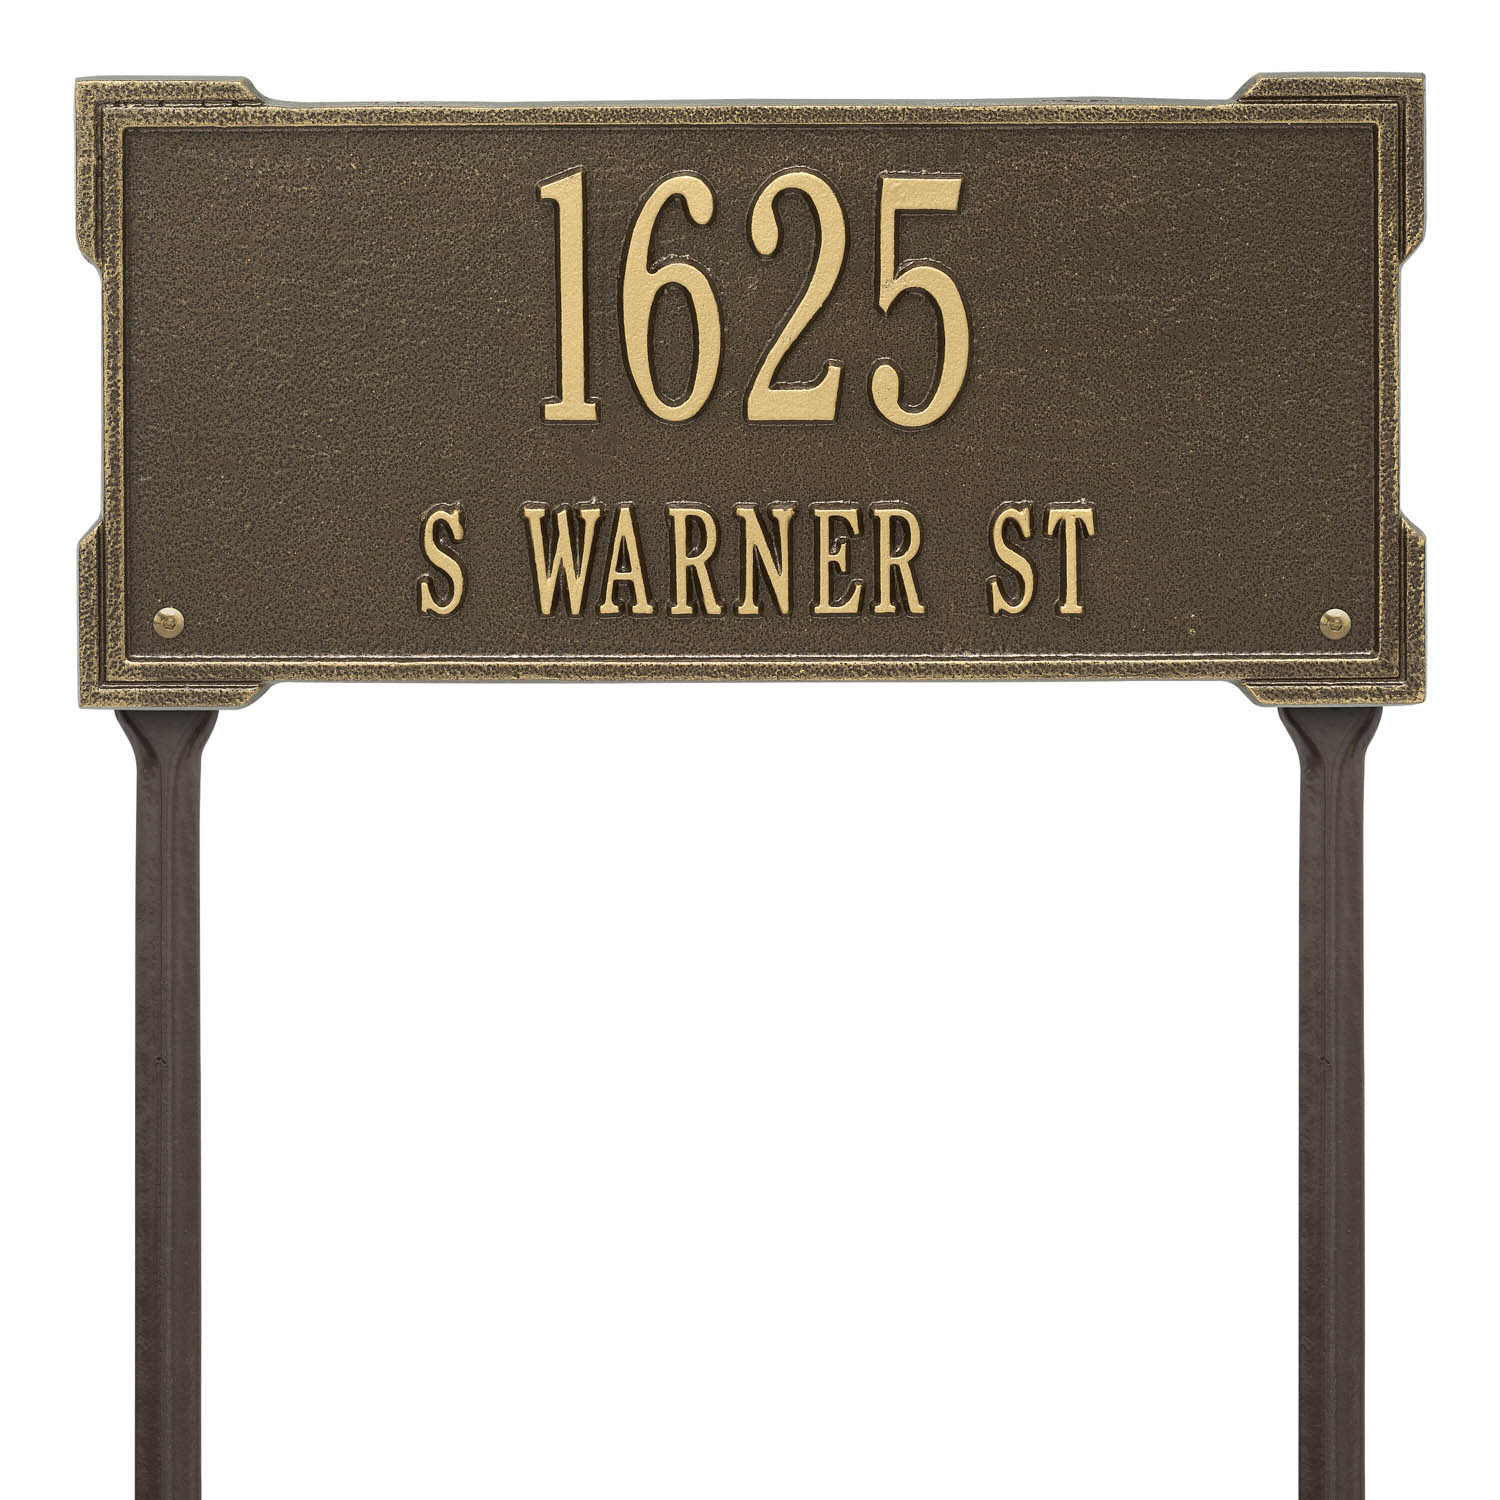 9e916dad897e The Roanoke Rectangle Address Plaque with a Antique Brass Finish, Standard  Lawn with Two Lines